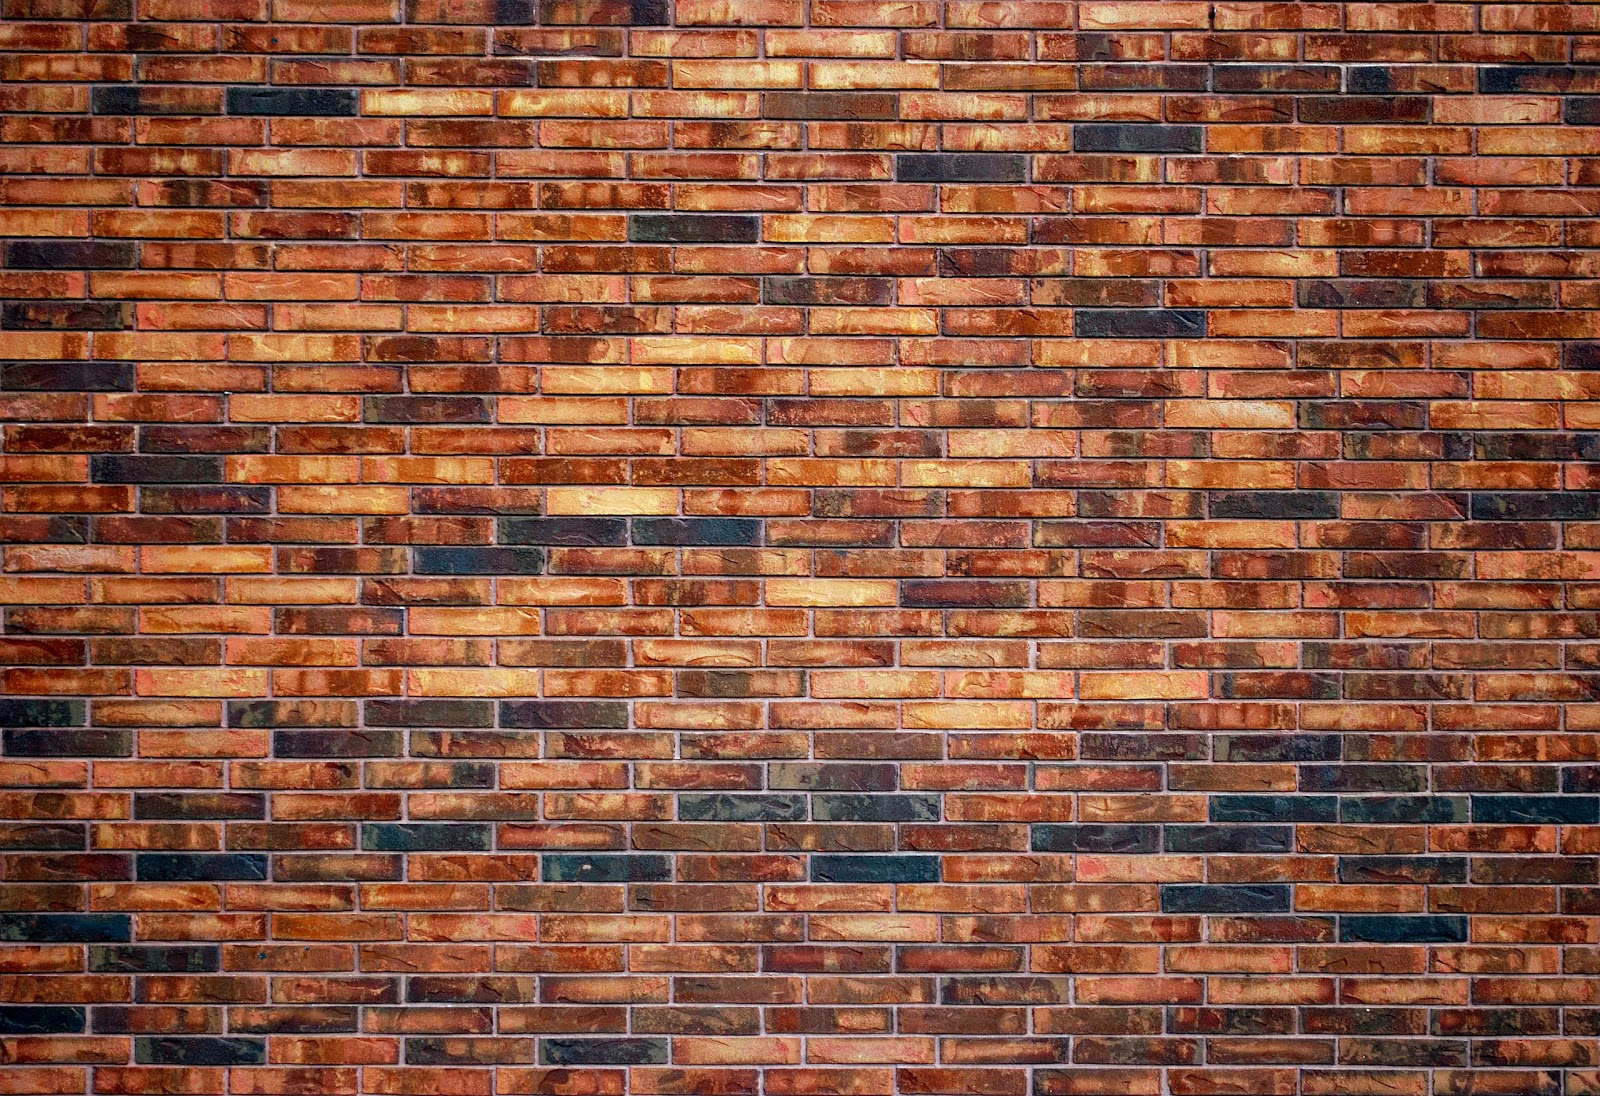 Download And Use Brick Texture Png Clipart image #23875